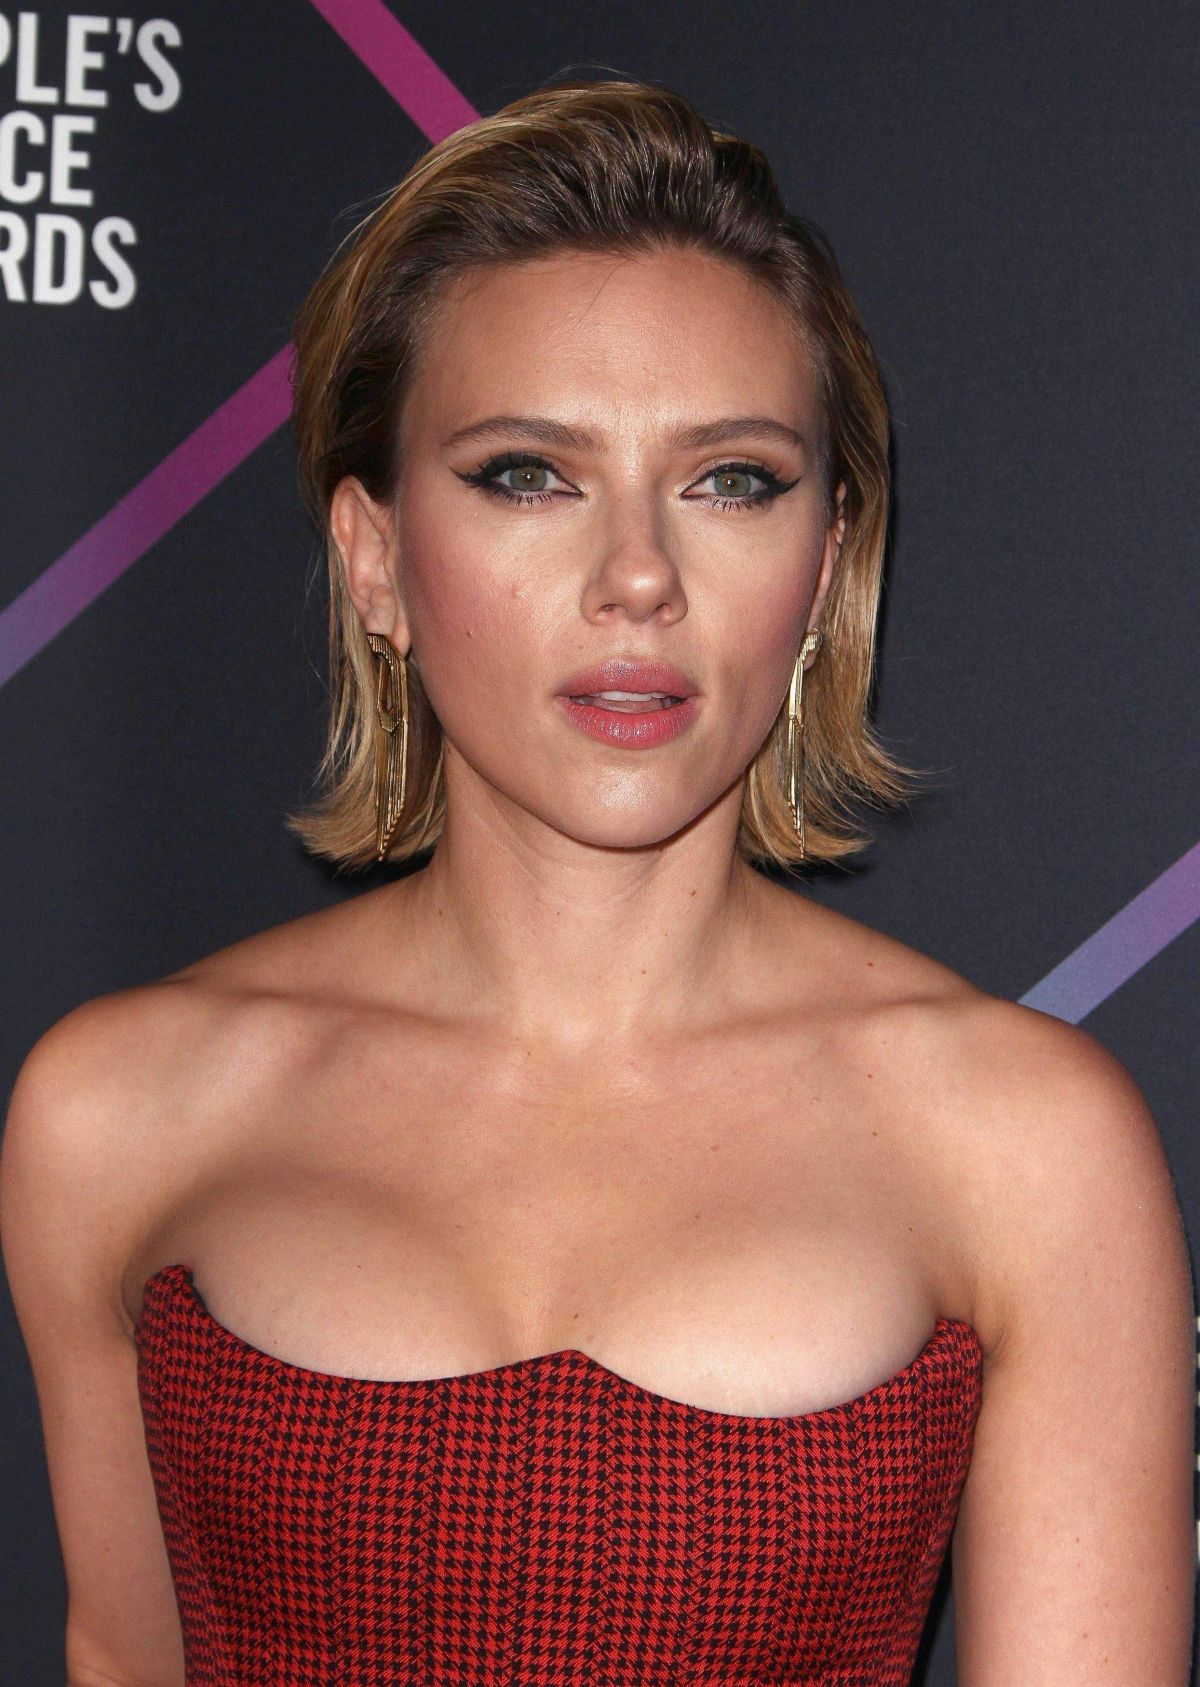 SCARLETT JOHANSSON at People's Choice Awards 2018 in Santa ...